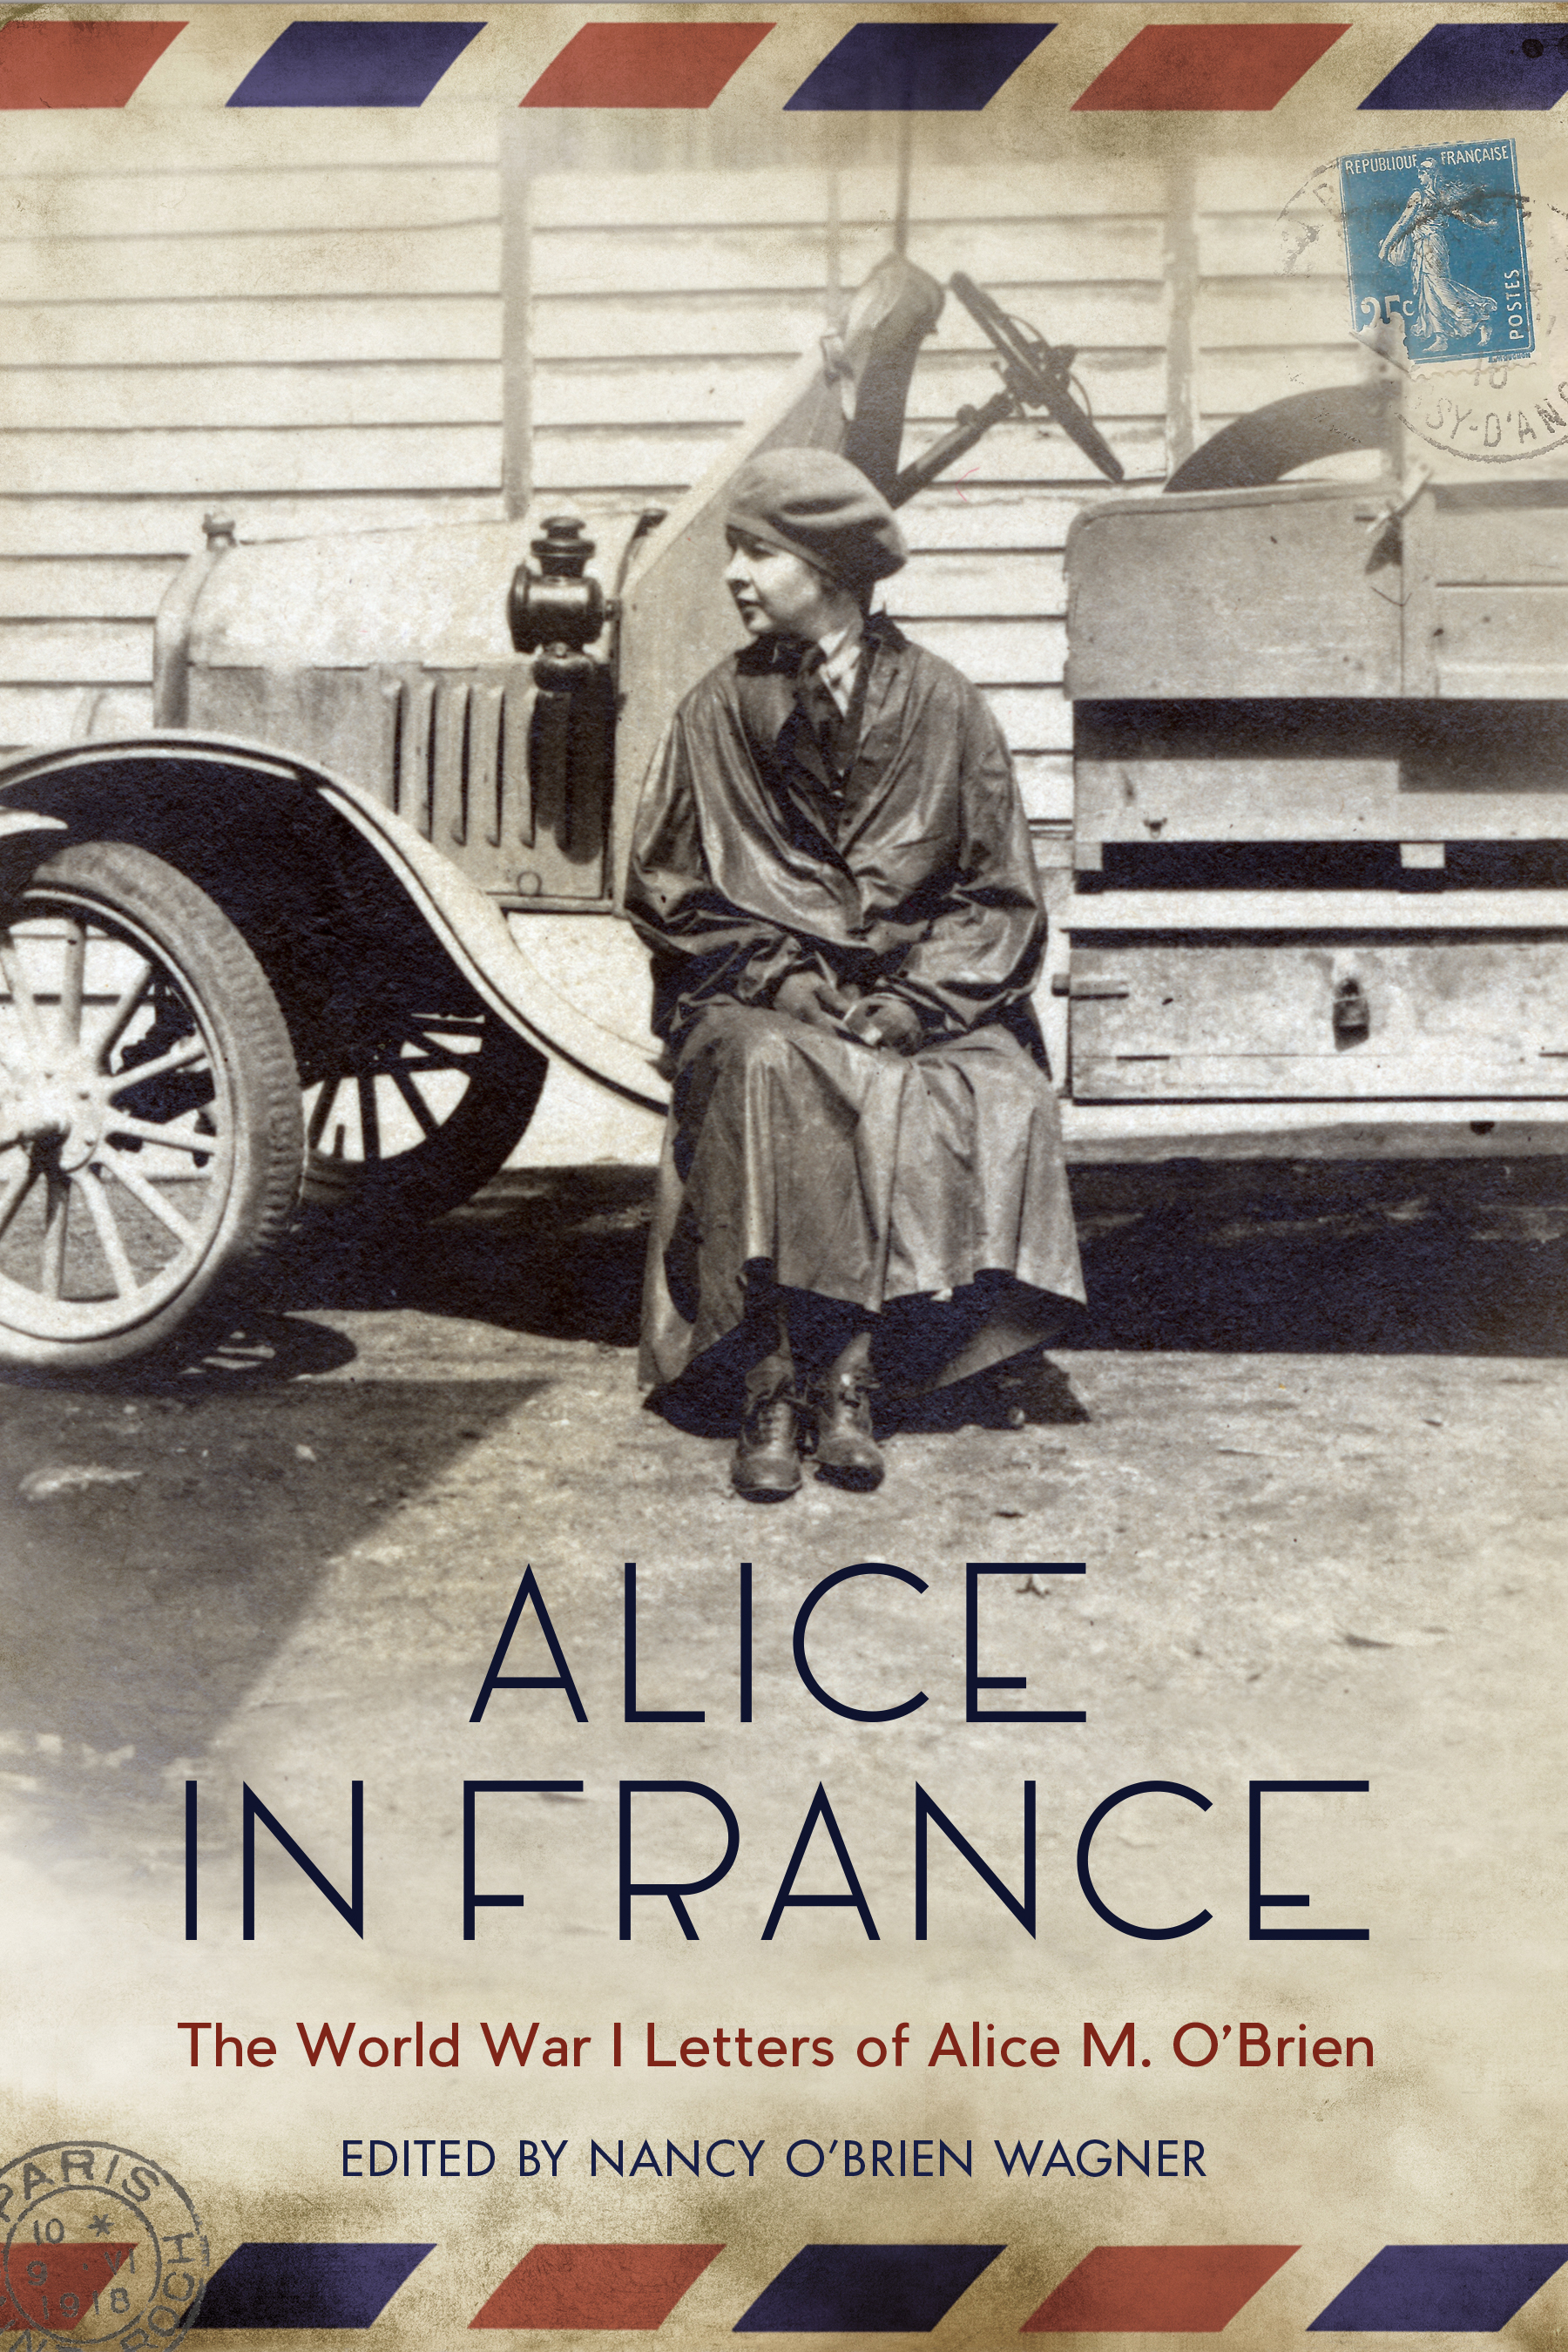 Alice in France: The World War I Letters of Alice M. O'Brien edited by Nancy O'Brien Wagner